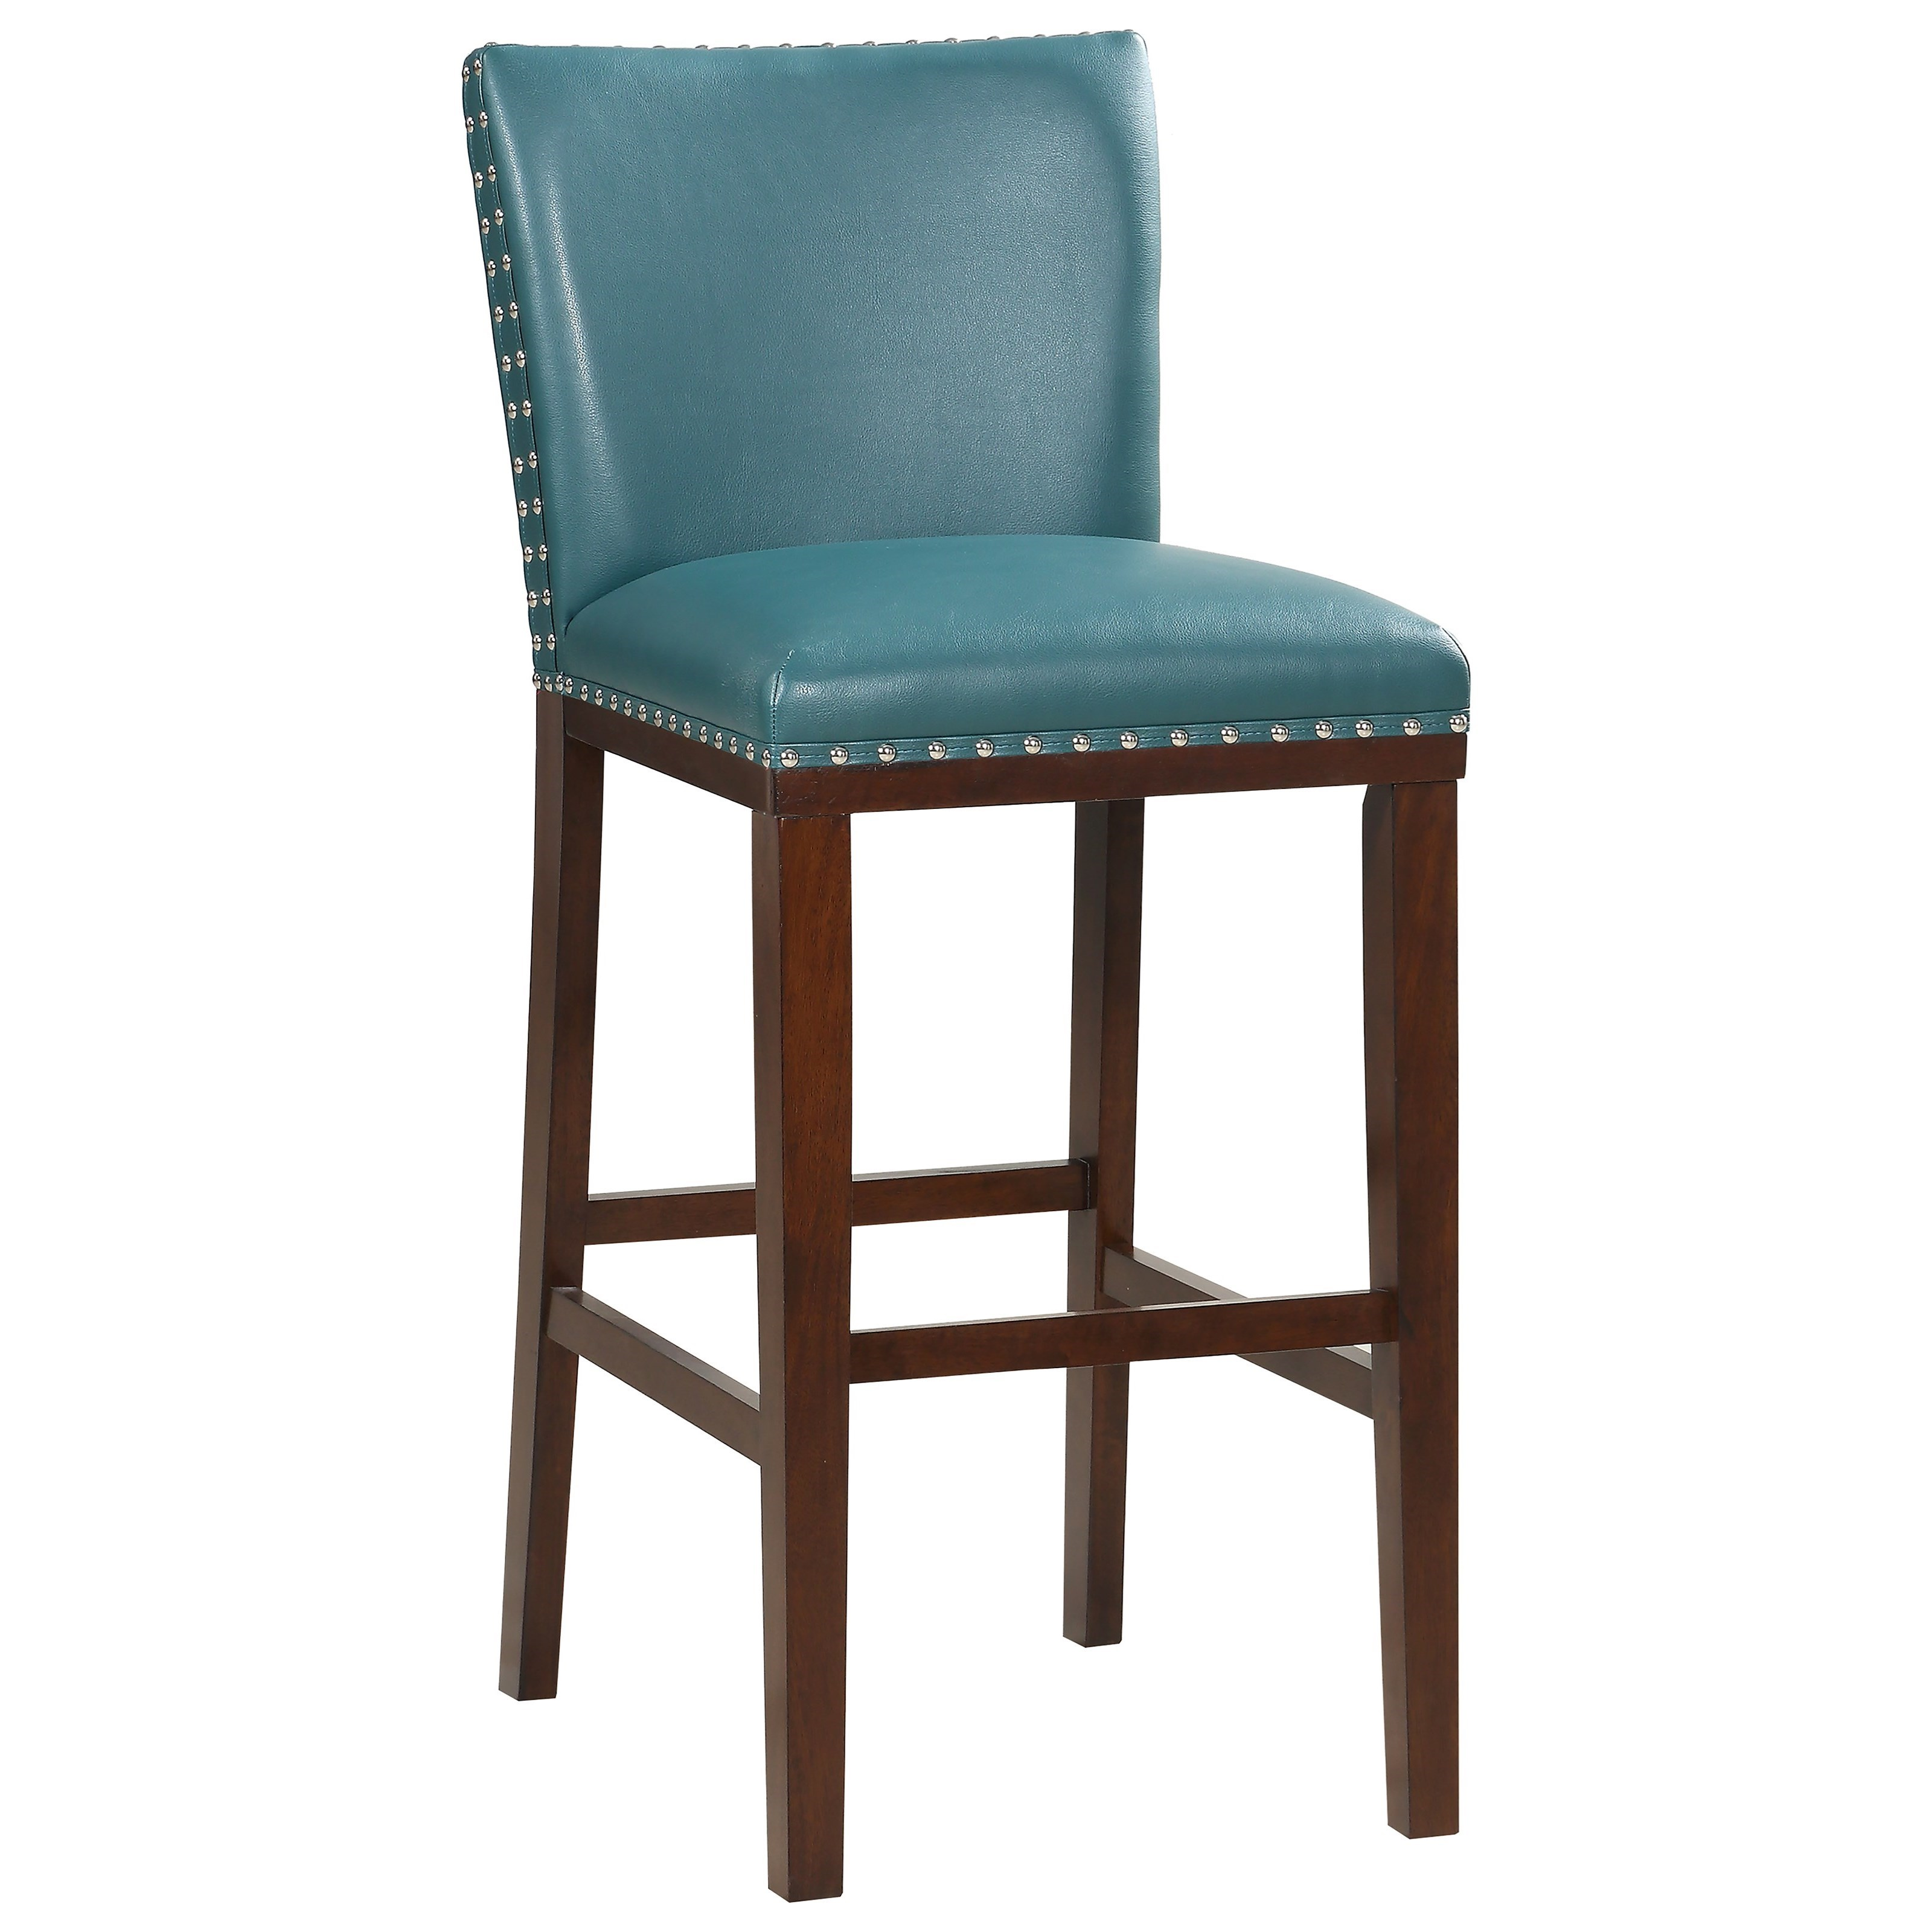 Tiffany Bar Chair by Steve Silver at Walker's Furniture